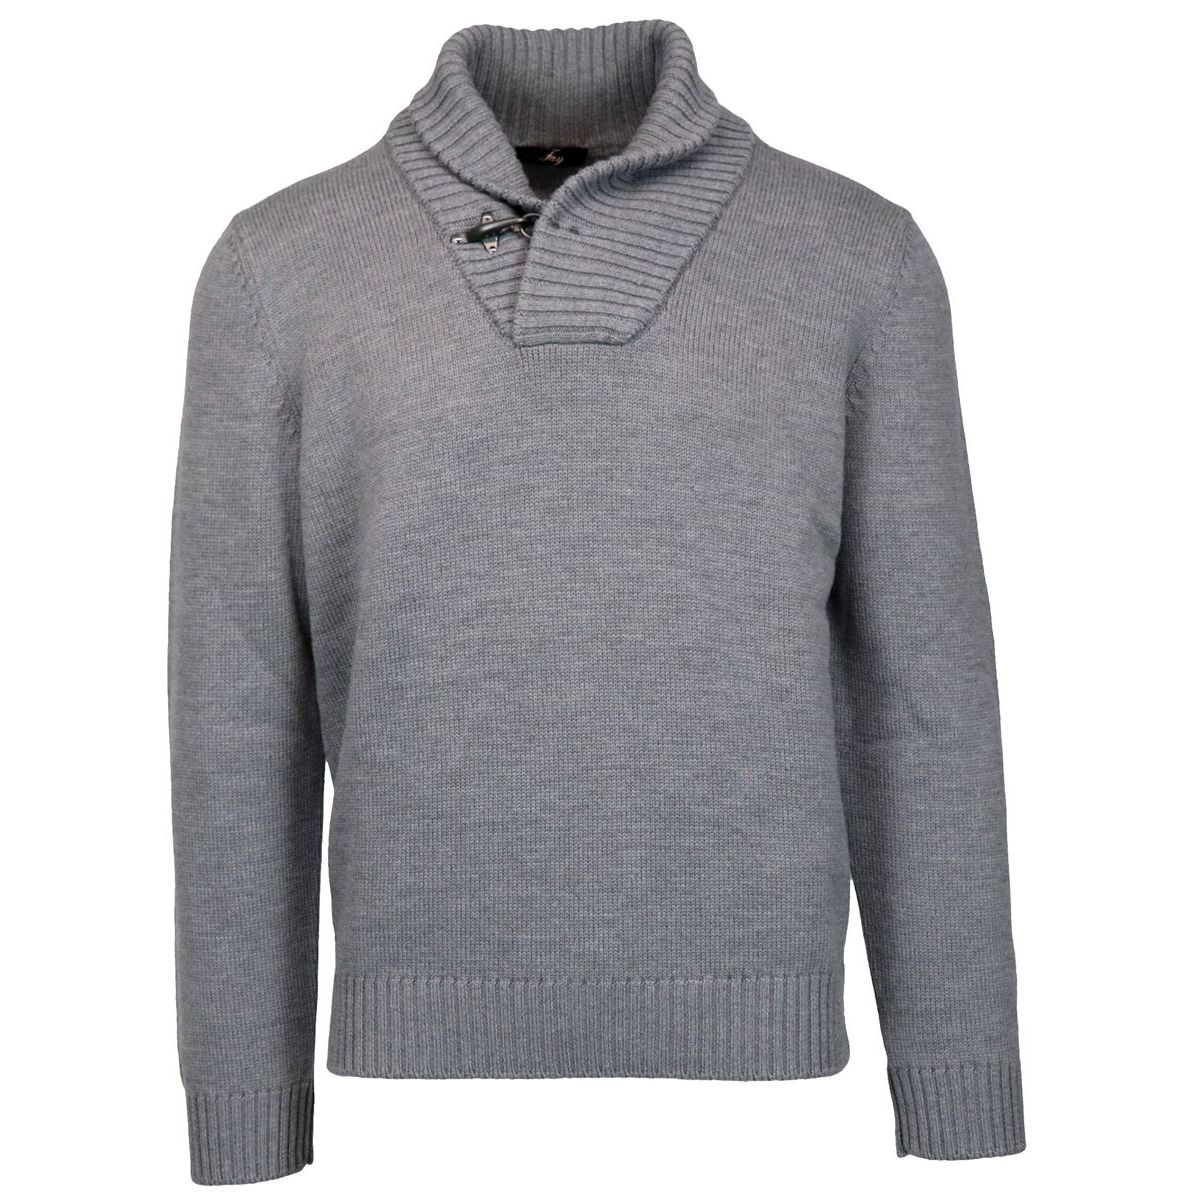 Wool sweater with shawl collar and hook Grey Fay